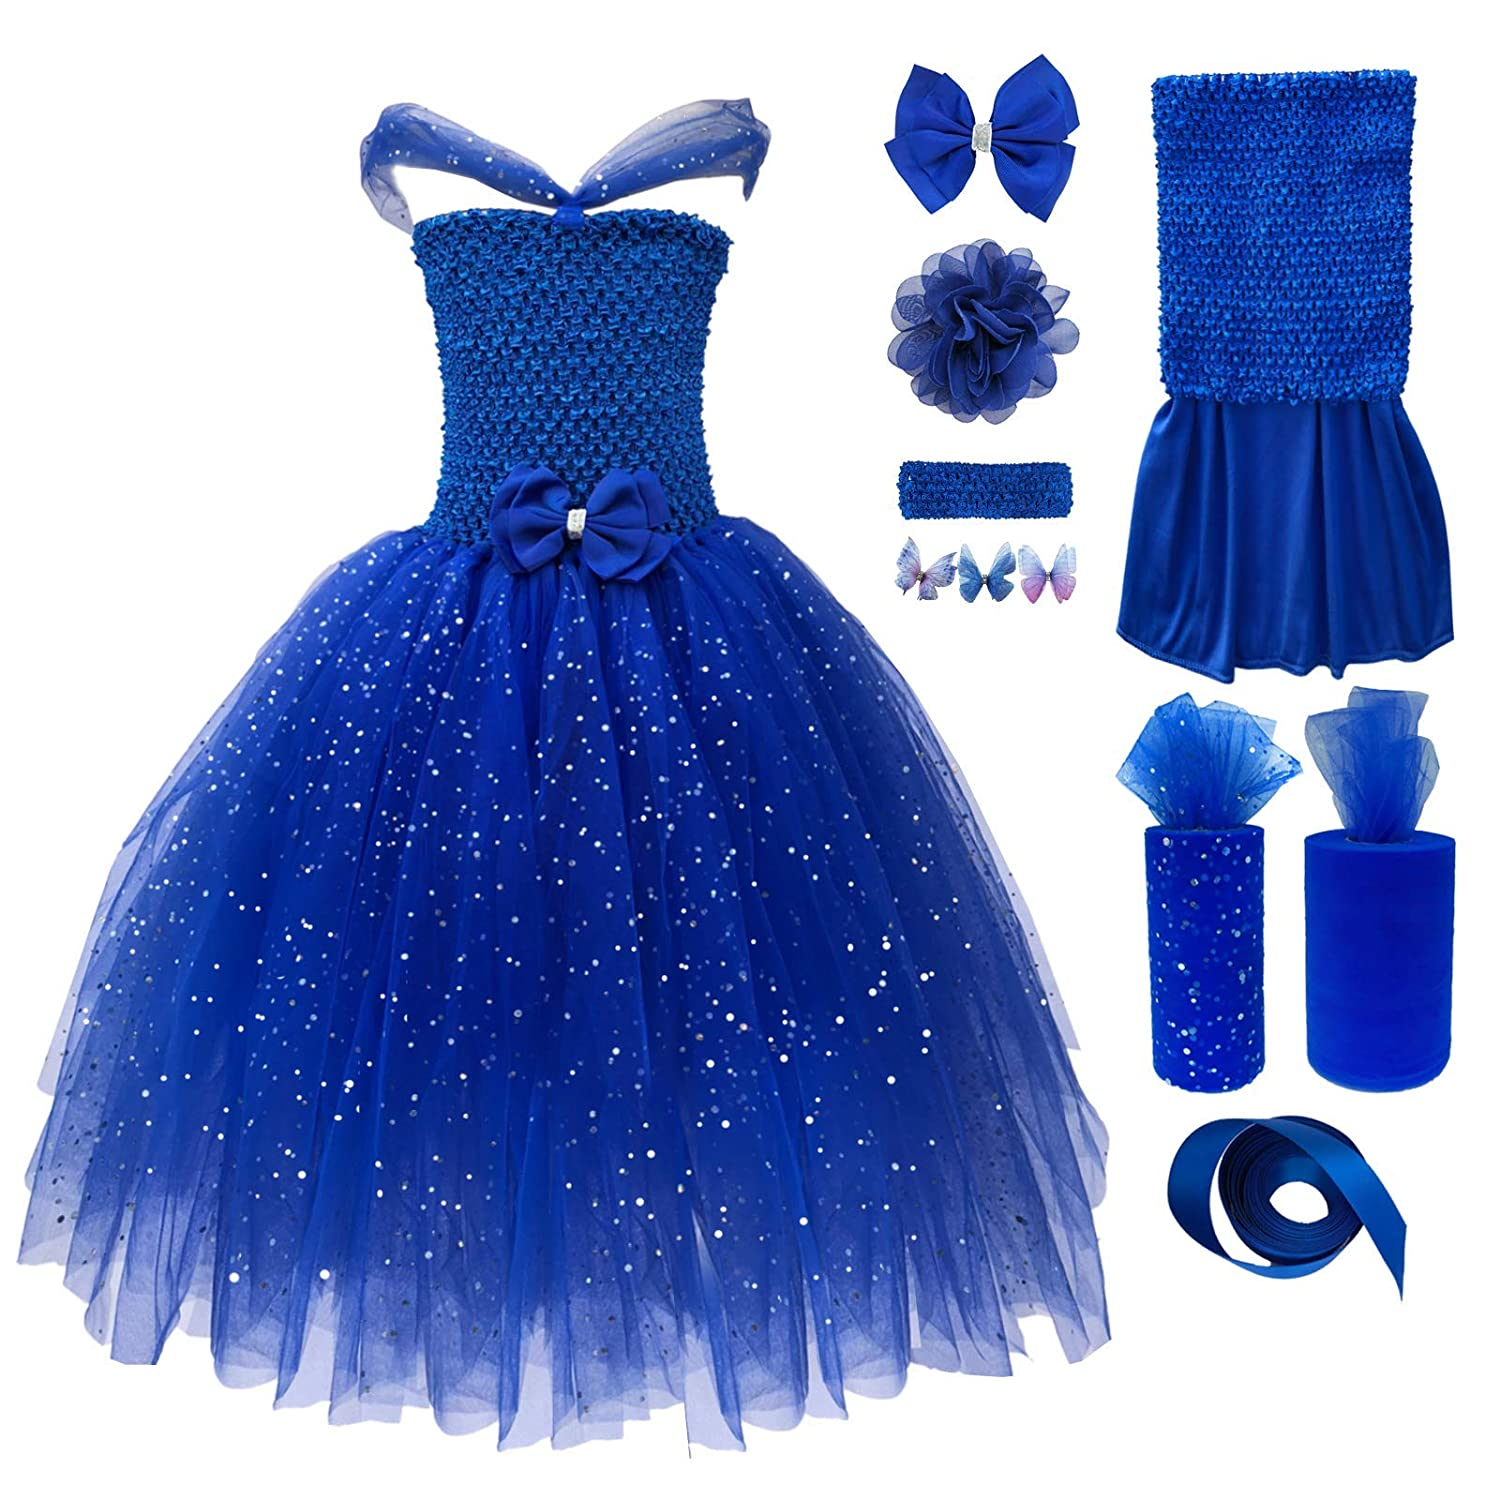 bf349c9efd6 There are finished dress and DIY package for you to choose. Each finished  Princess Tutu dress set includes 1 dress